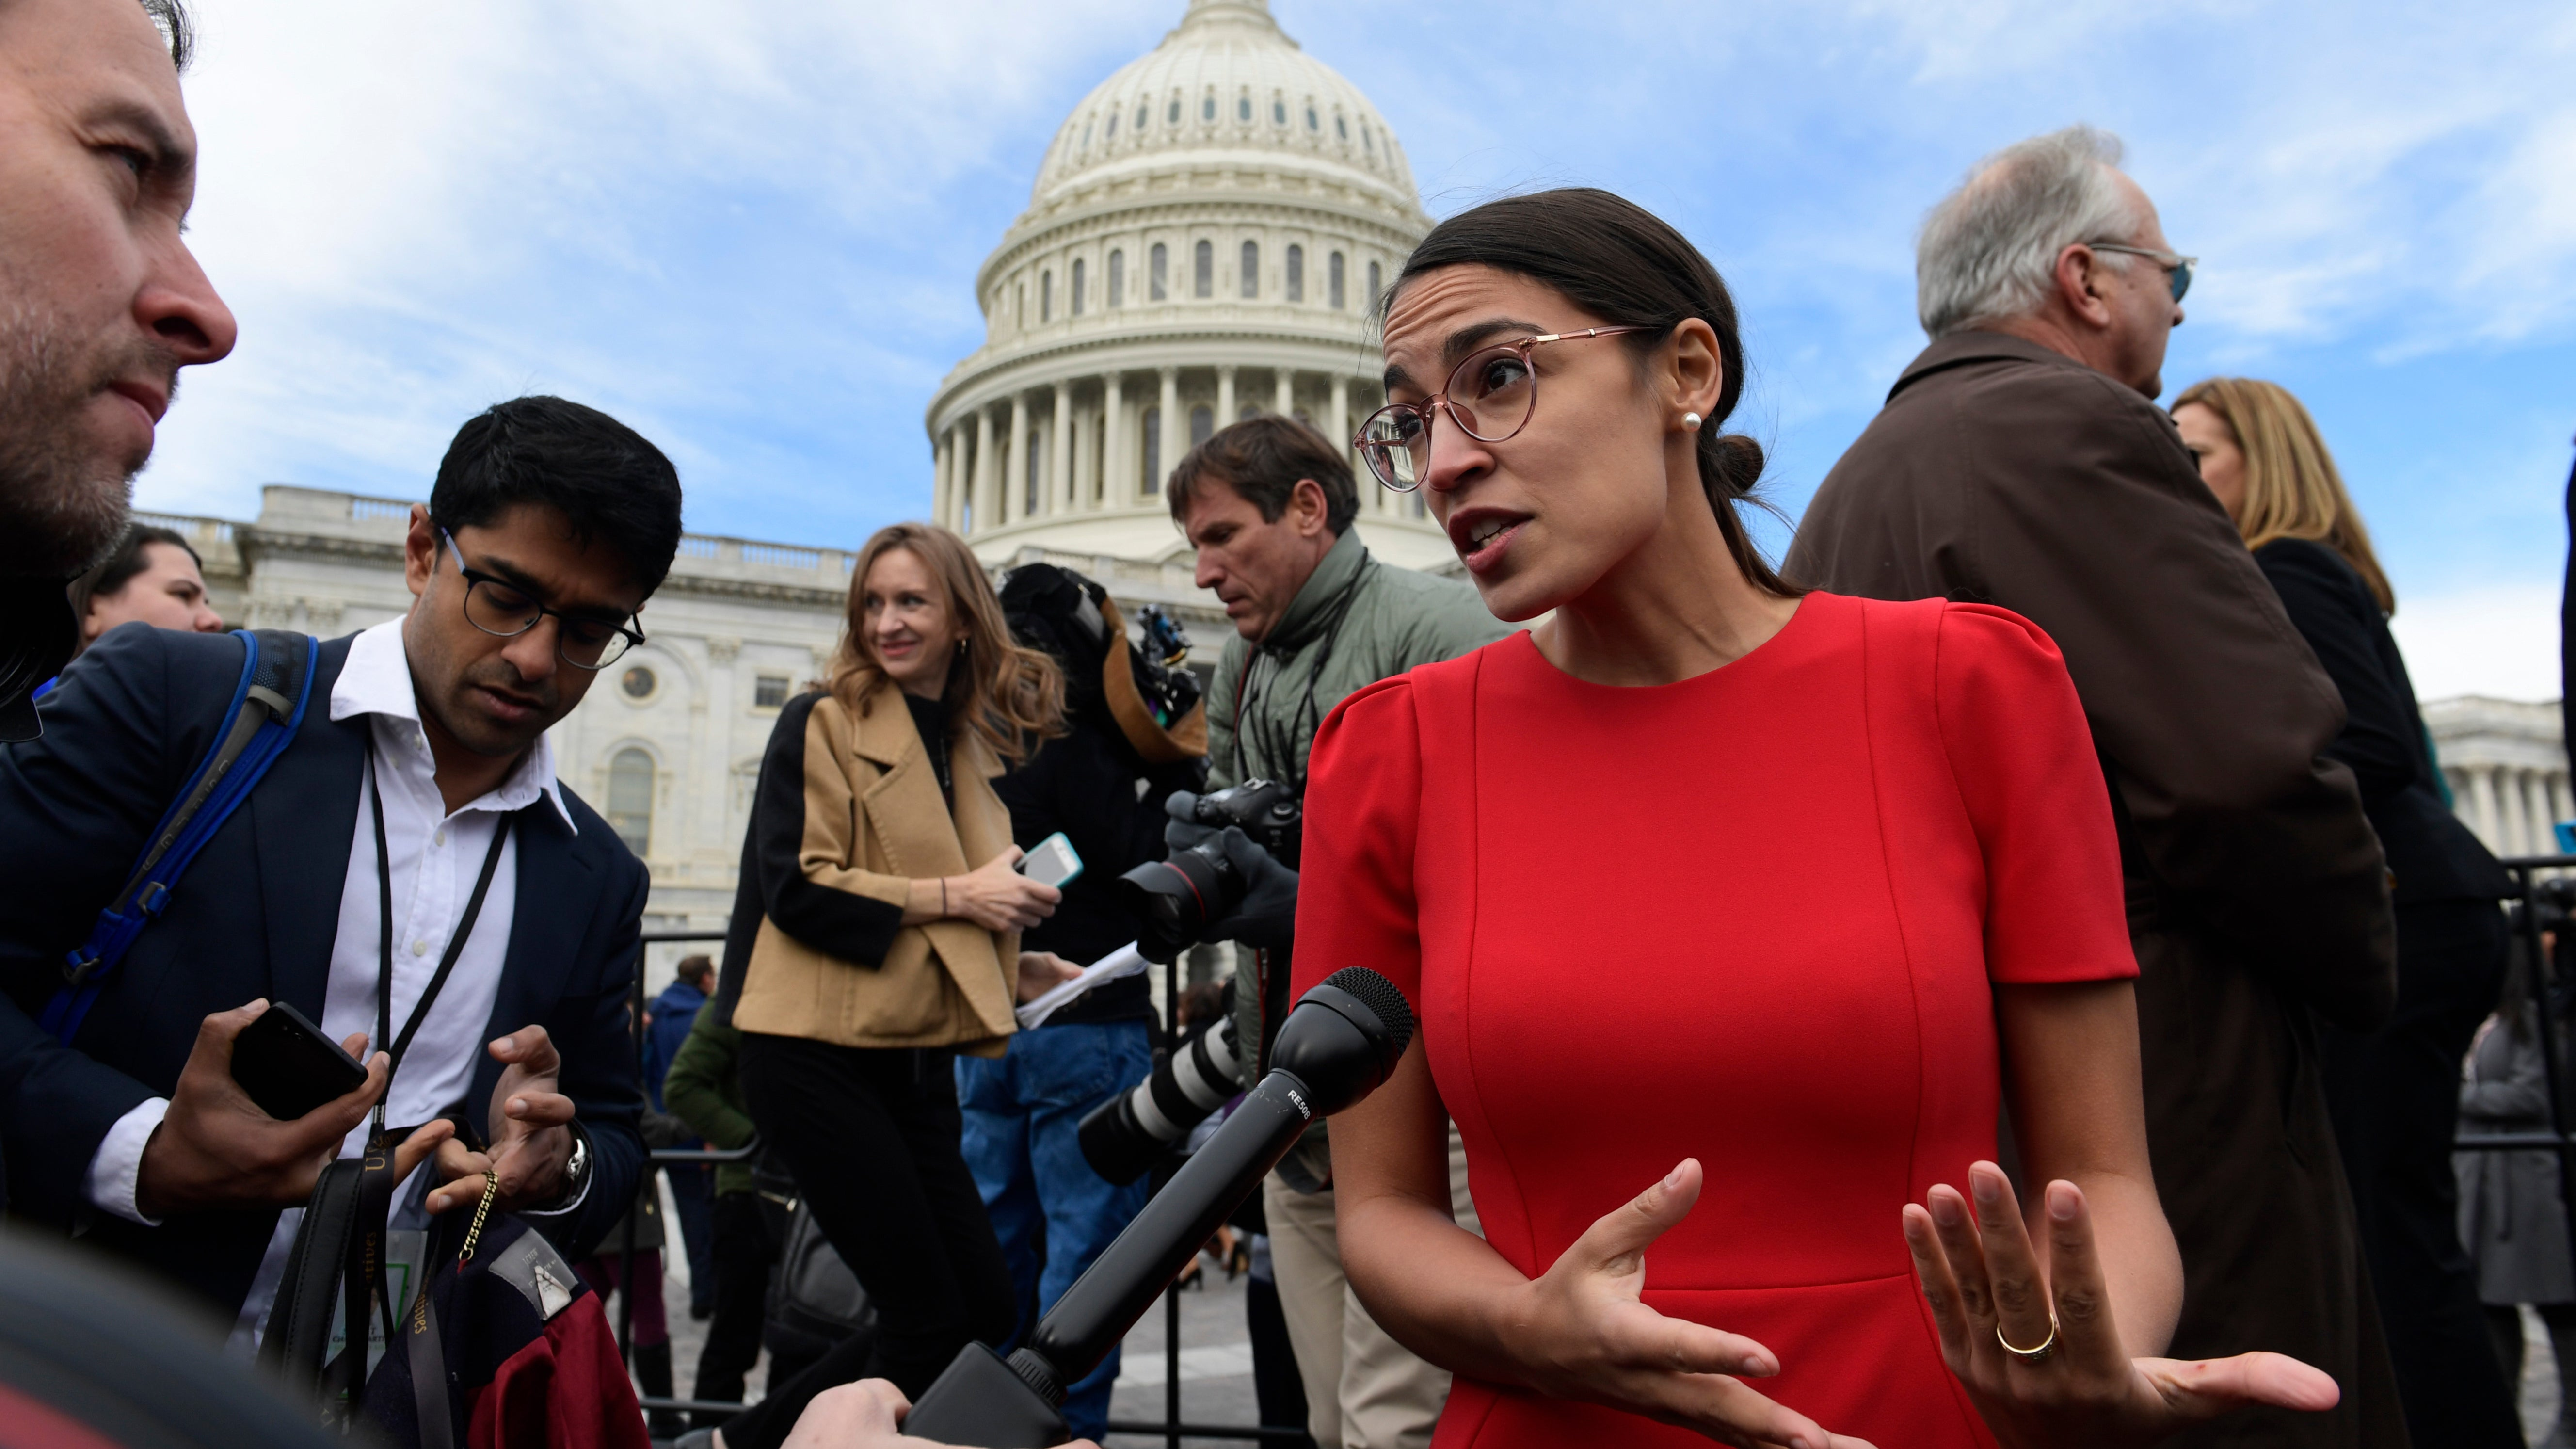 Alexandria Ocasio-Cortez On Climate Report: 'It's Not Enough To Think It's Important'